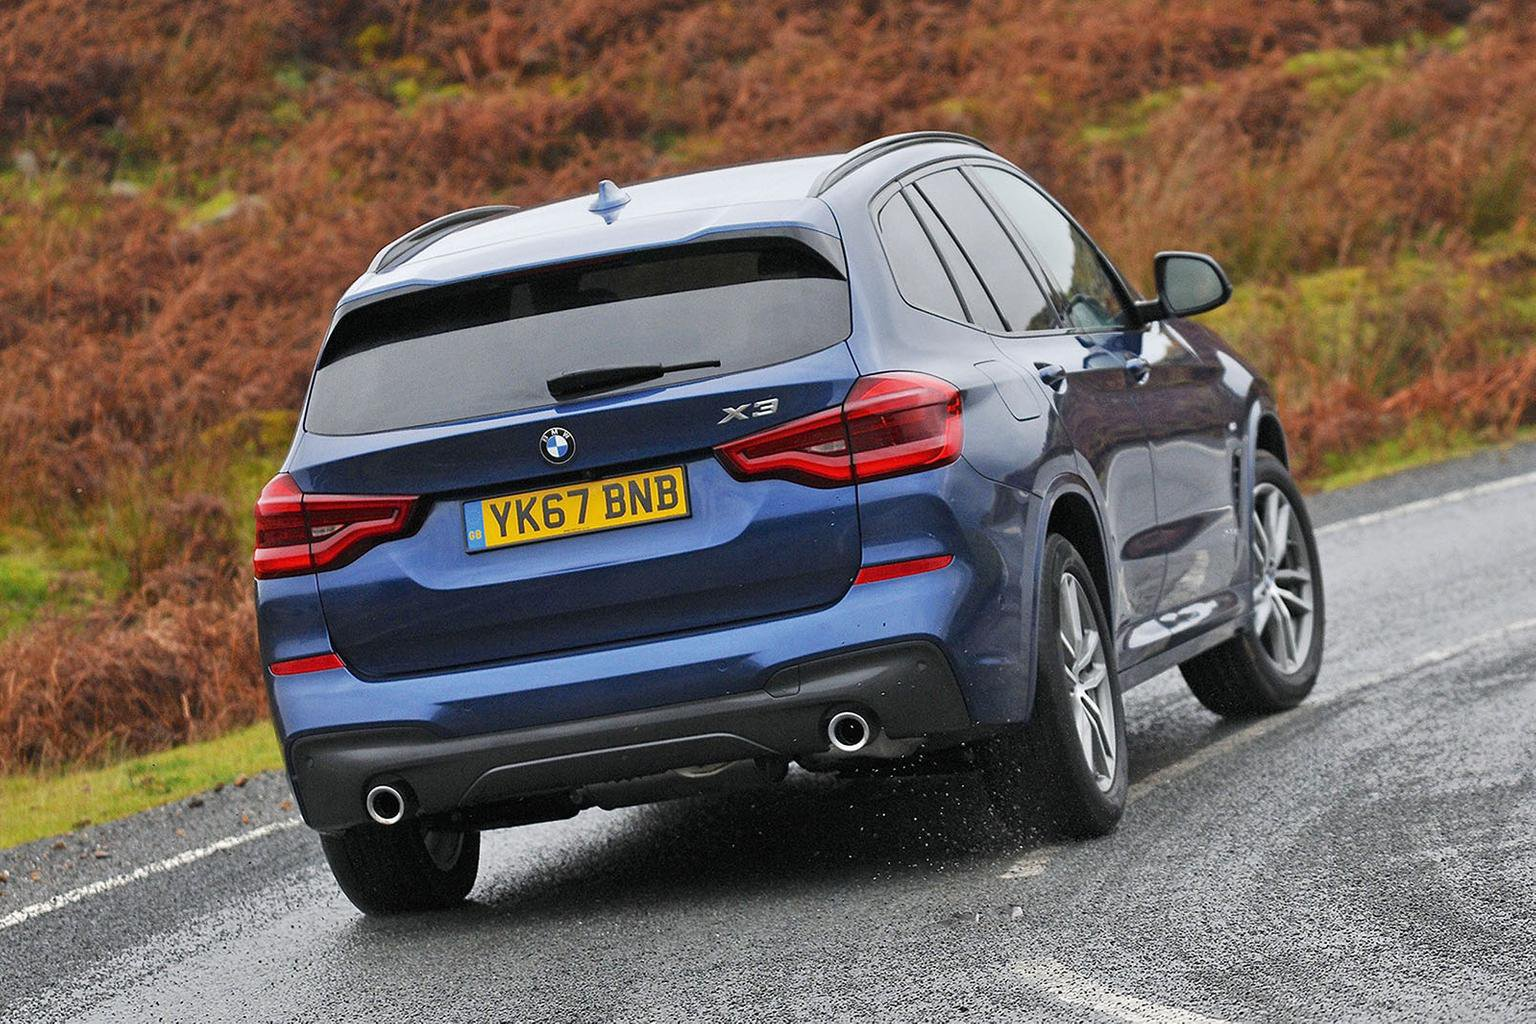 New BMW X3 vs Audi Q5 vs Land Rover Discovery Sport